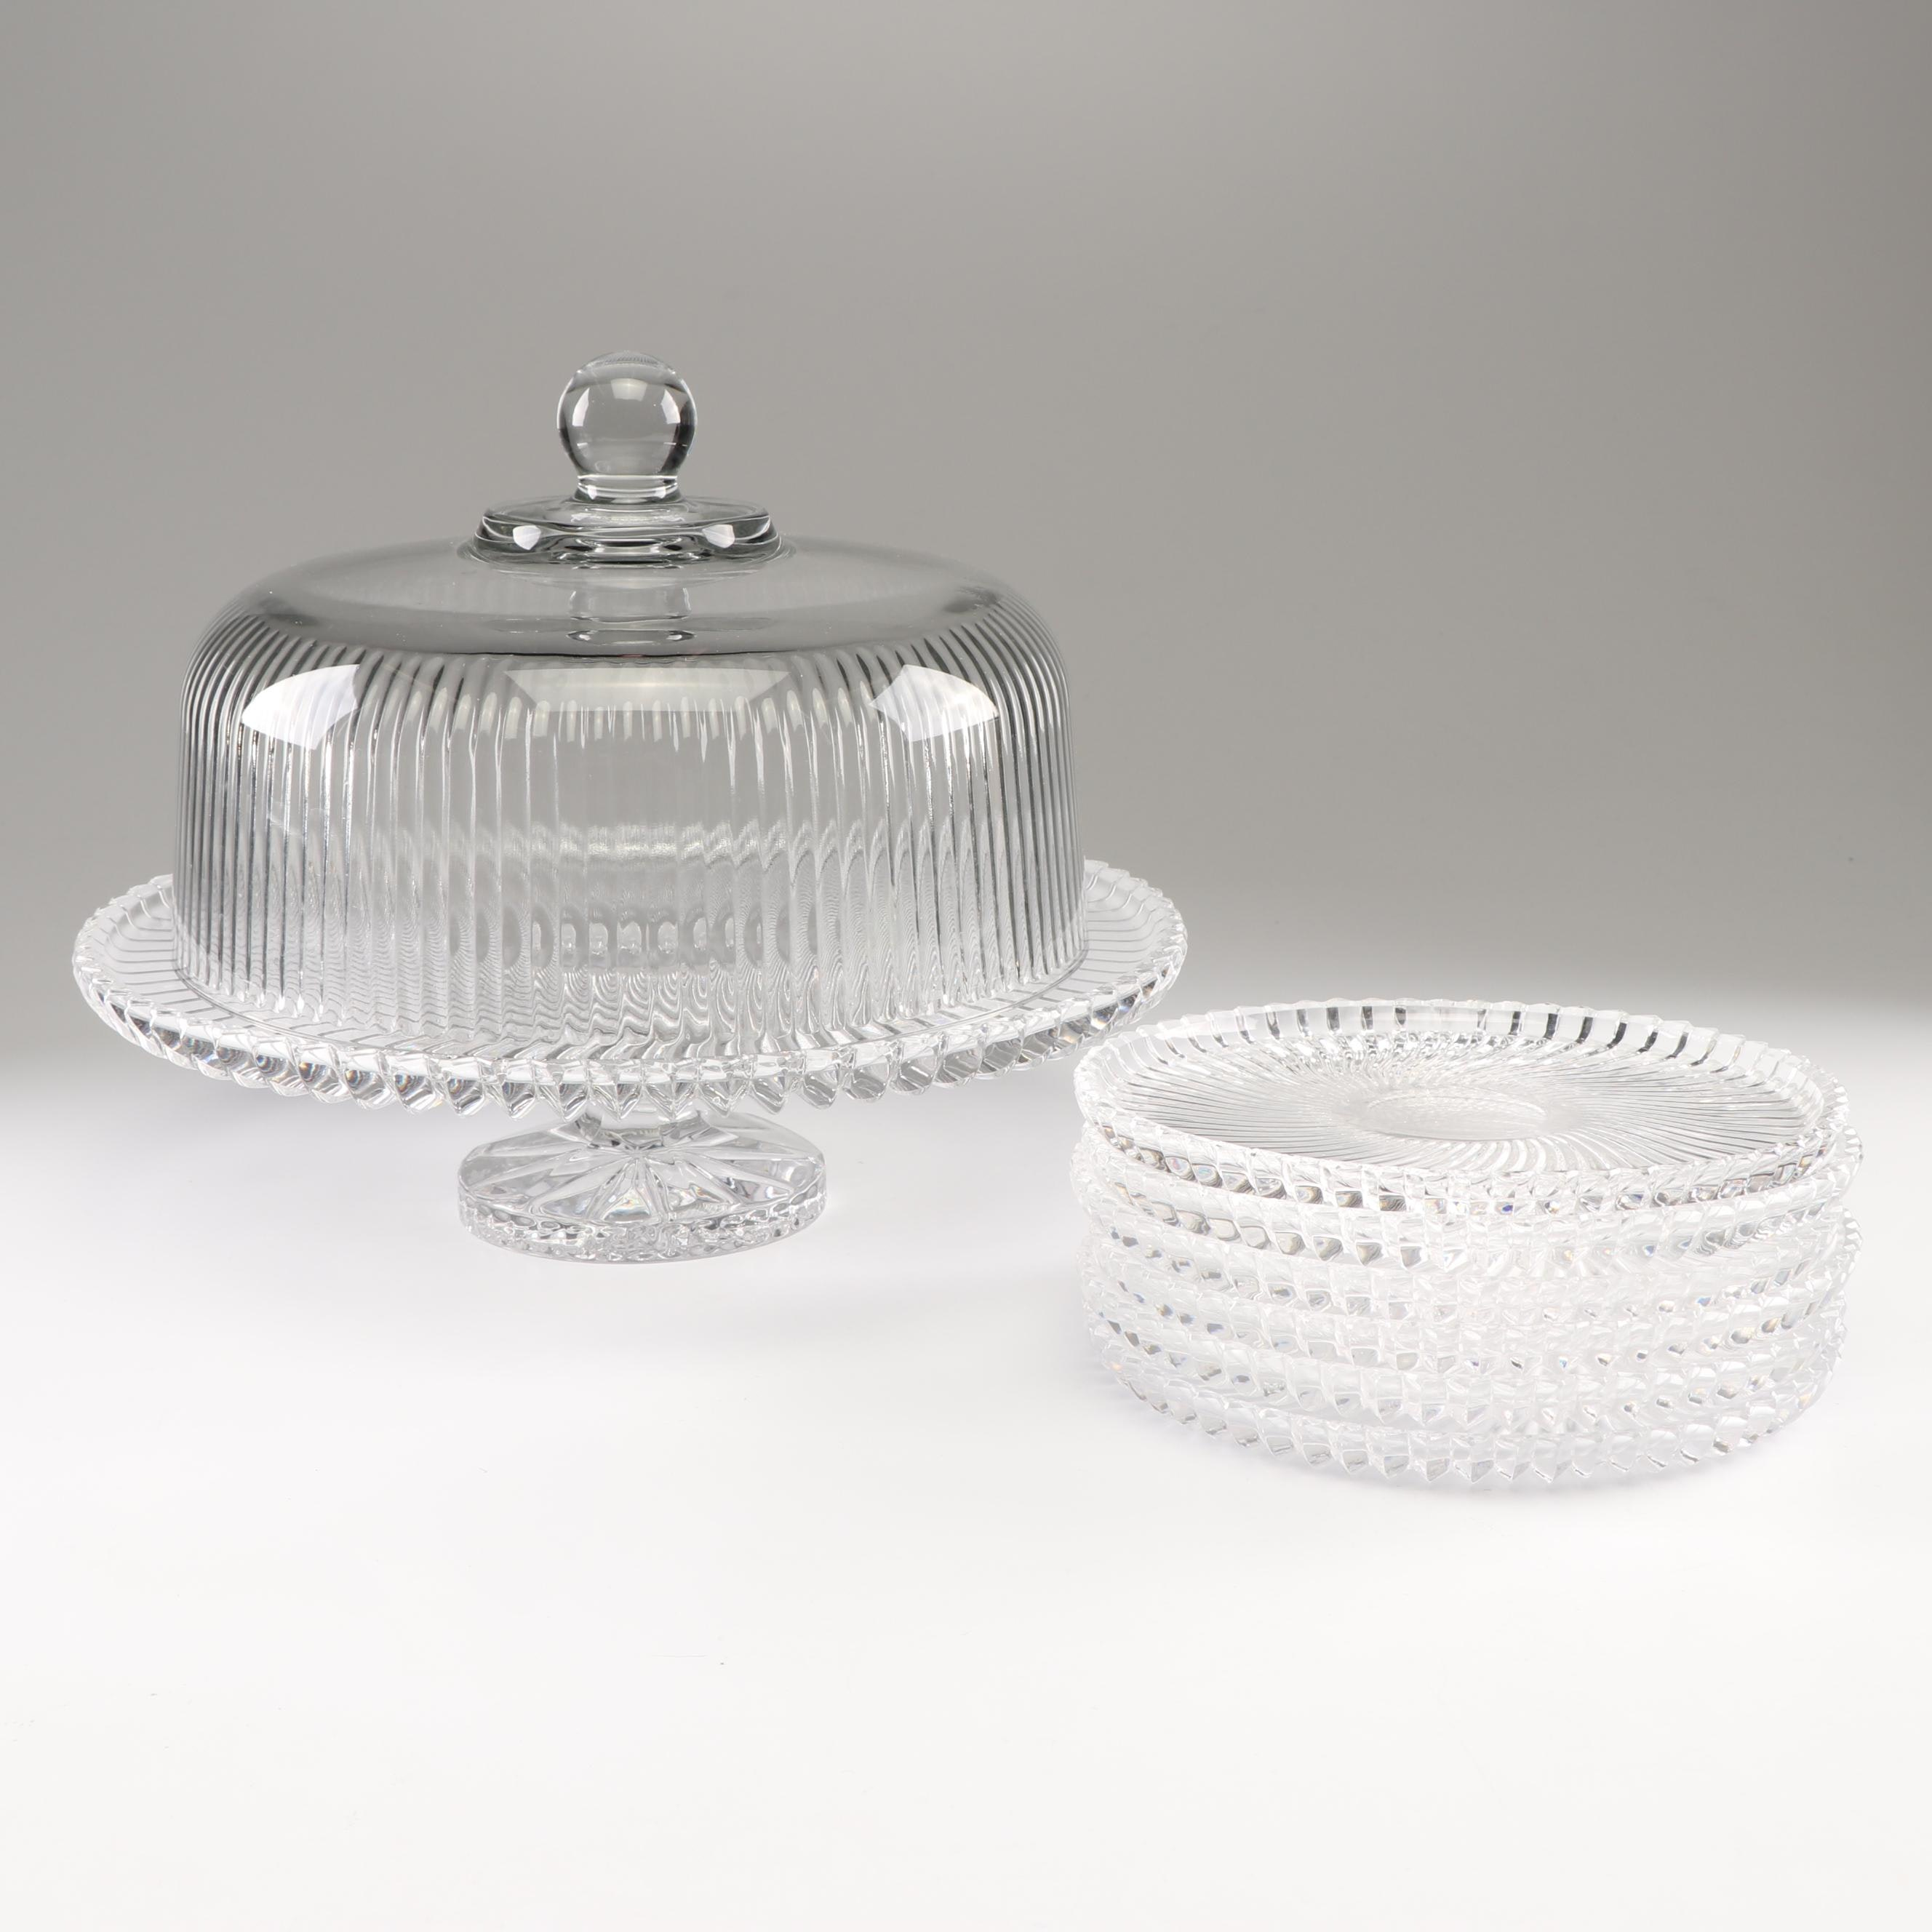 Crystal Cake Stand and Dessert Plates with Glass Cake Dome